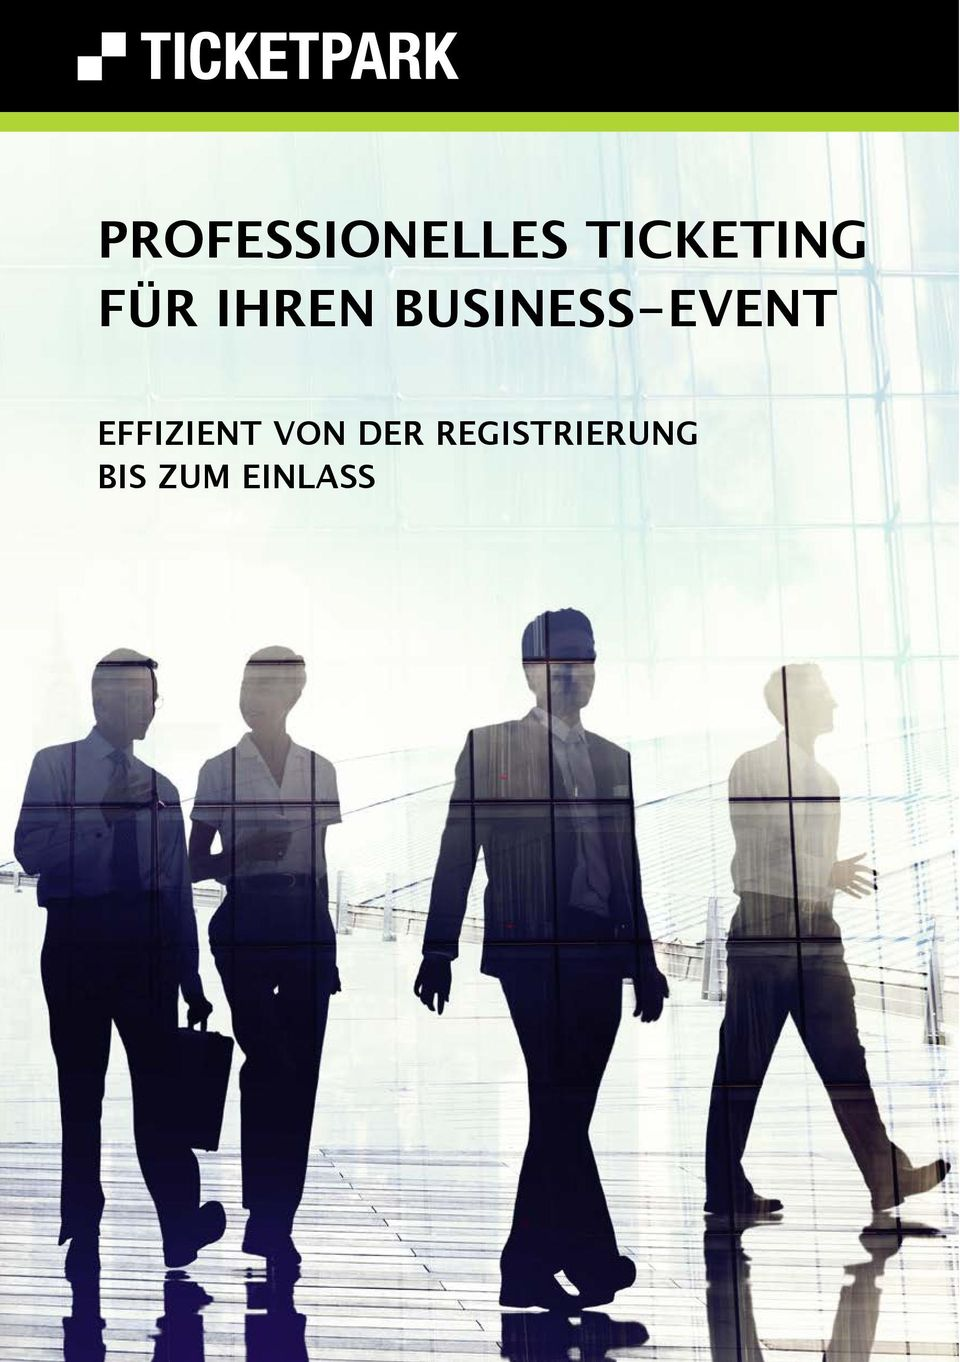 BUSINESS-EVENT EFFIZIENT